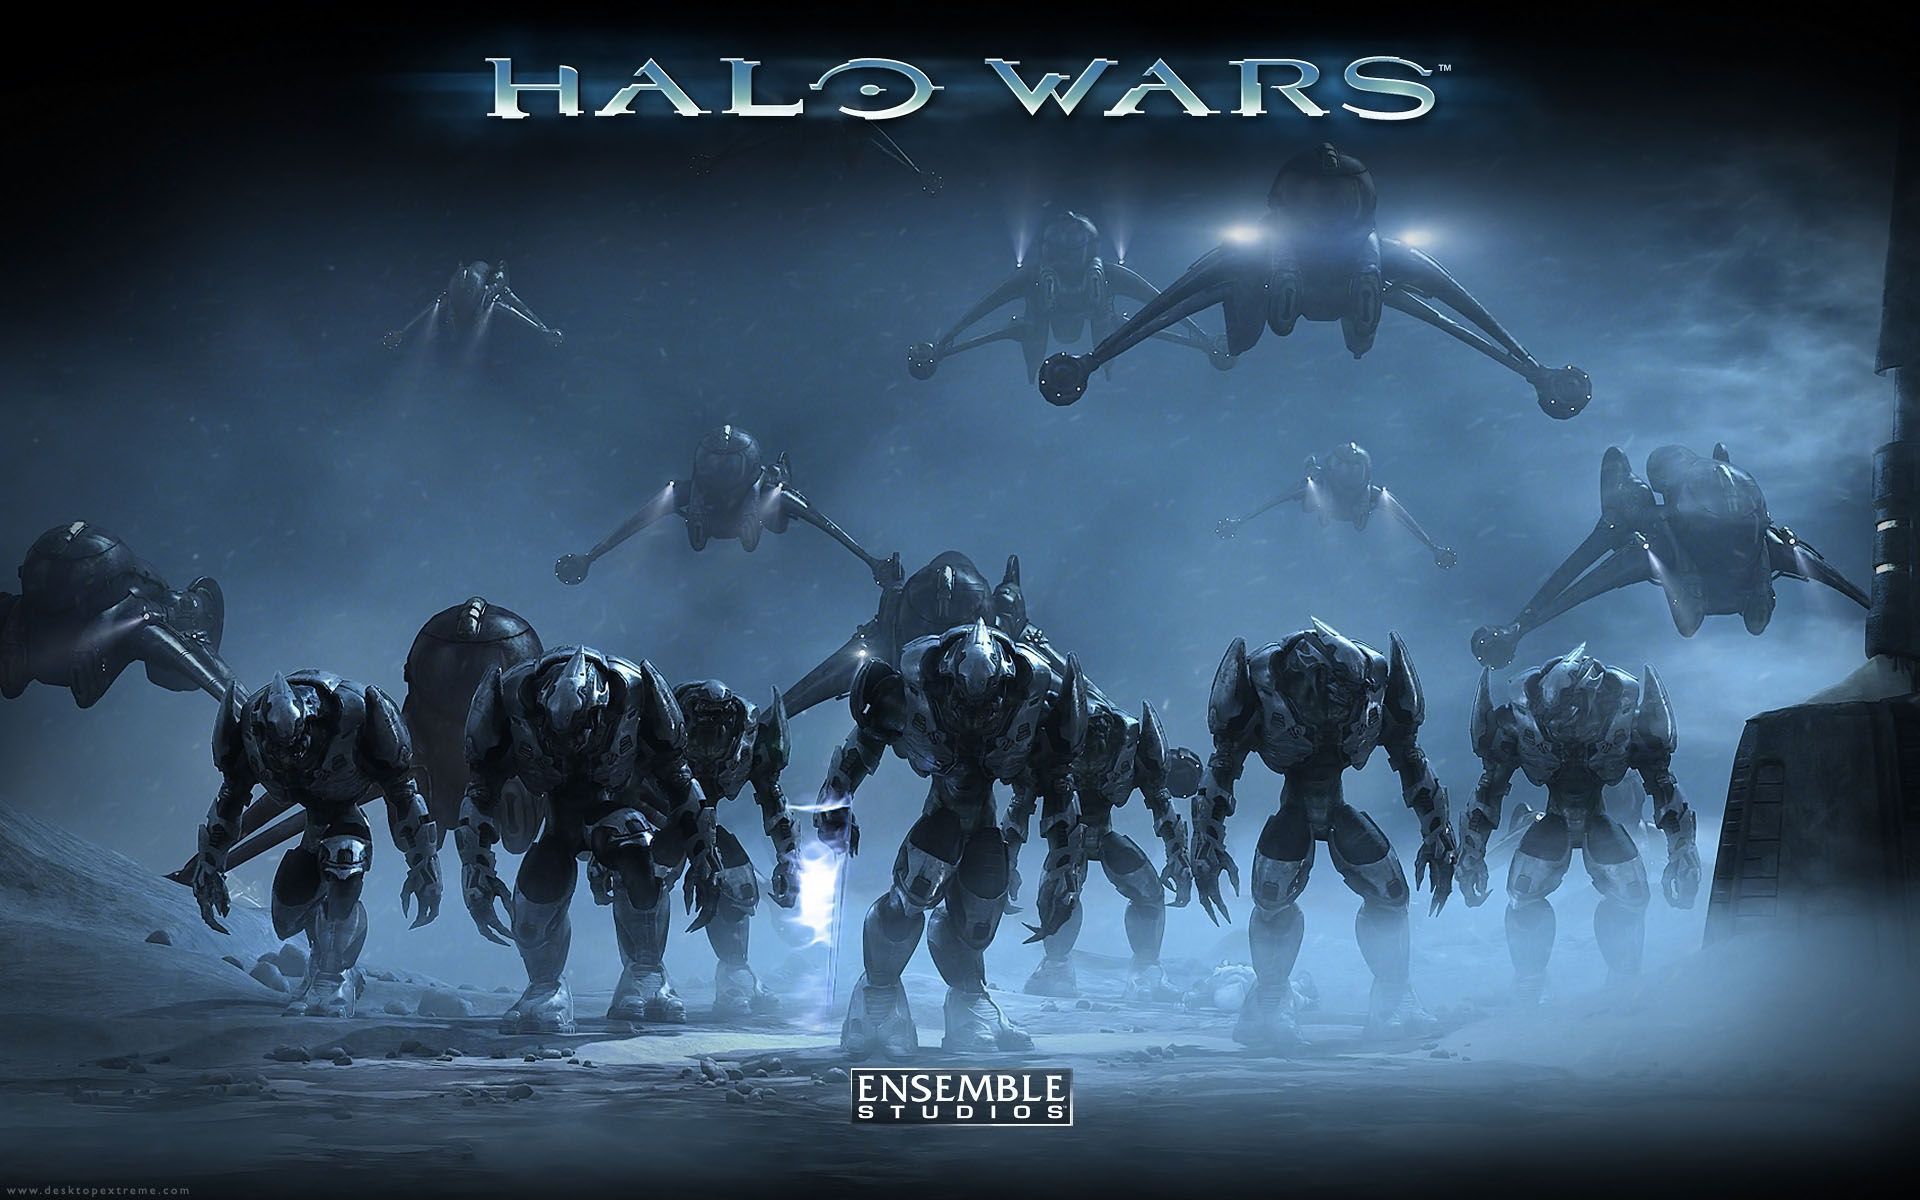 Halo Wars Xbox 360 Game Wallpapers HD Wallpapers 1920x1200